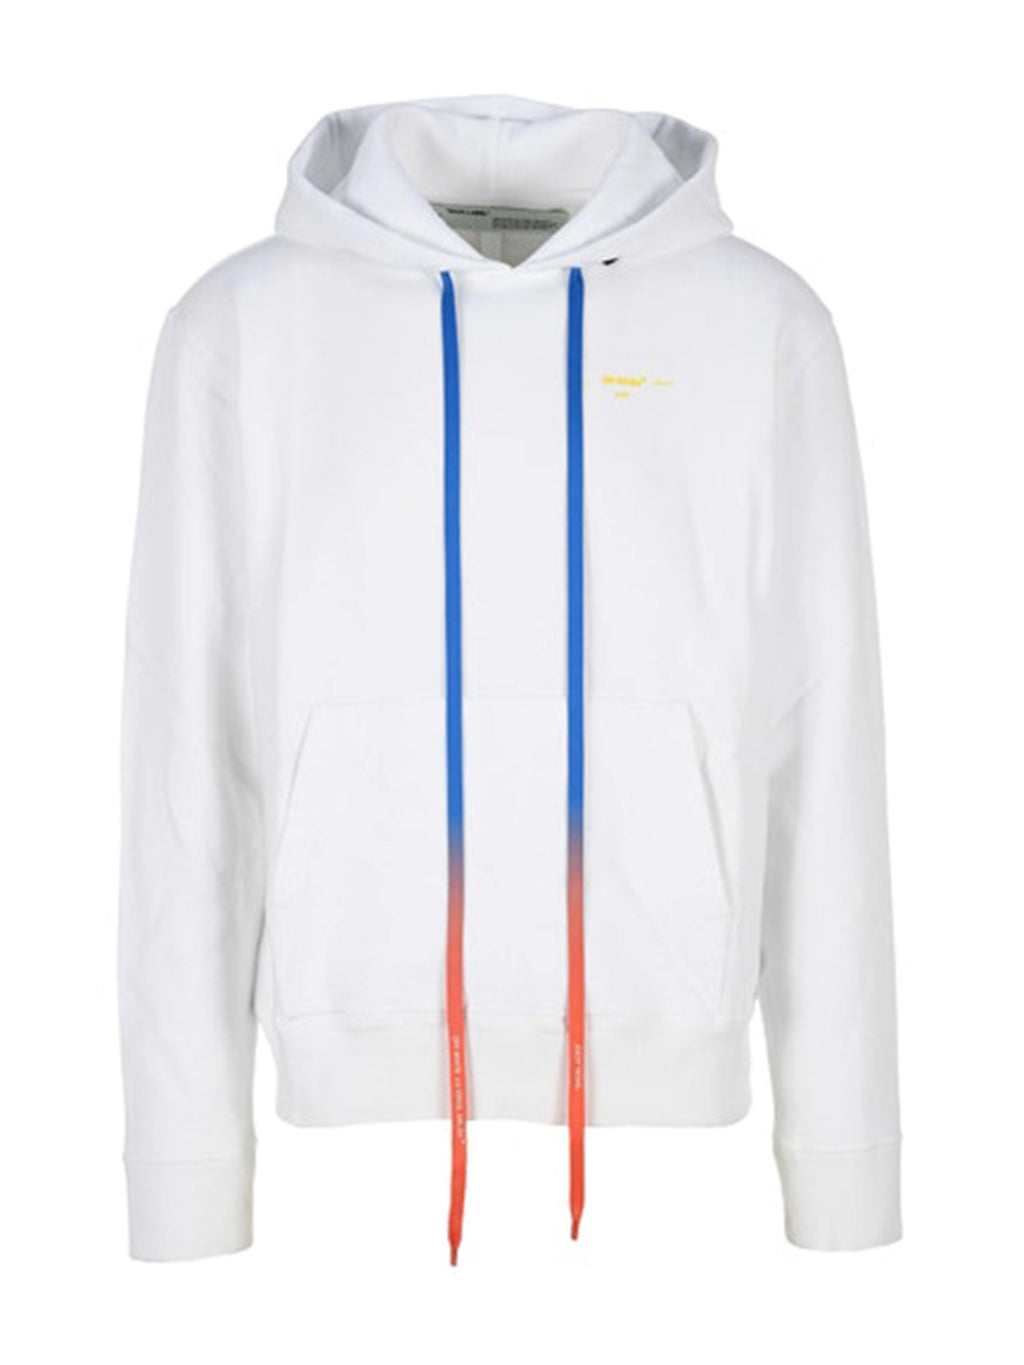 OFF-WHITE Acrylic Arrows Slim Fit Hoodie White/Yellow